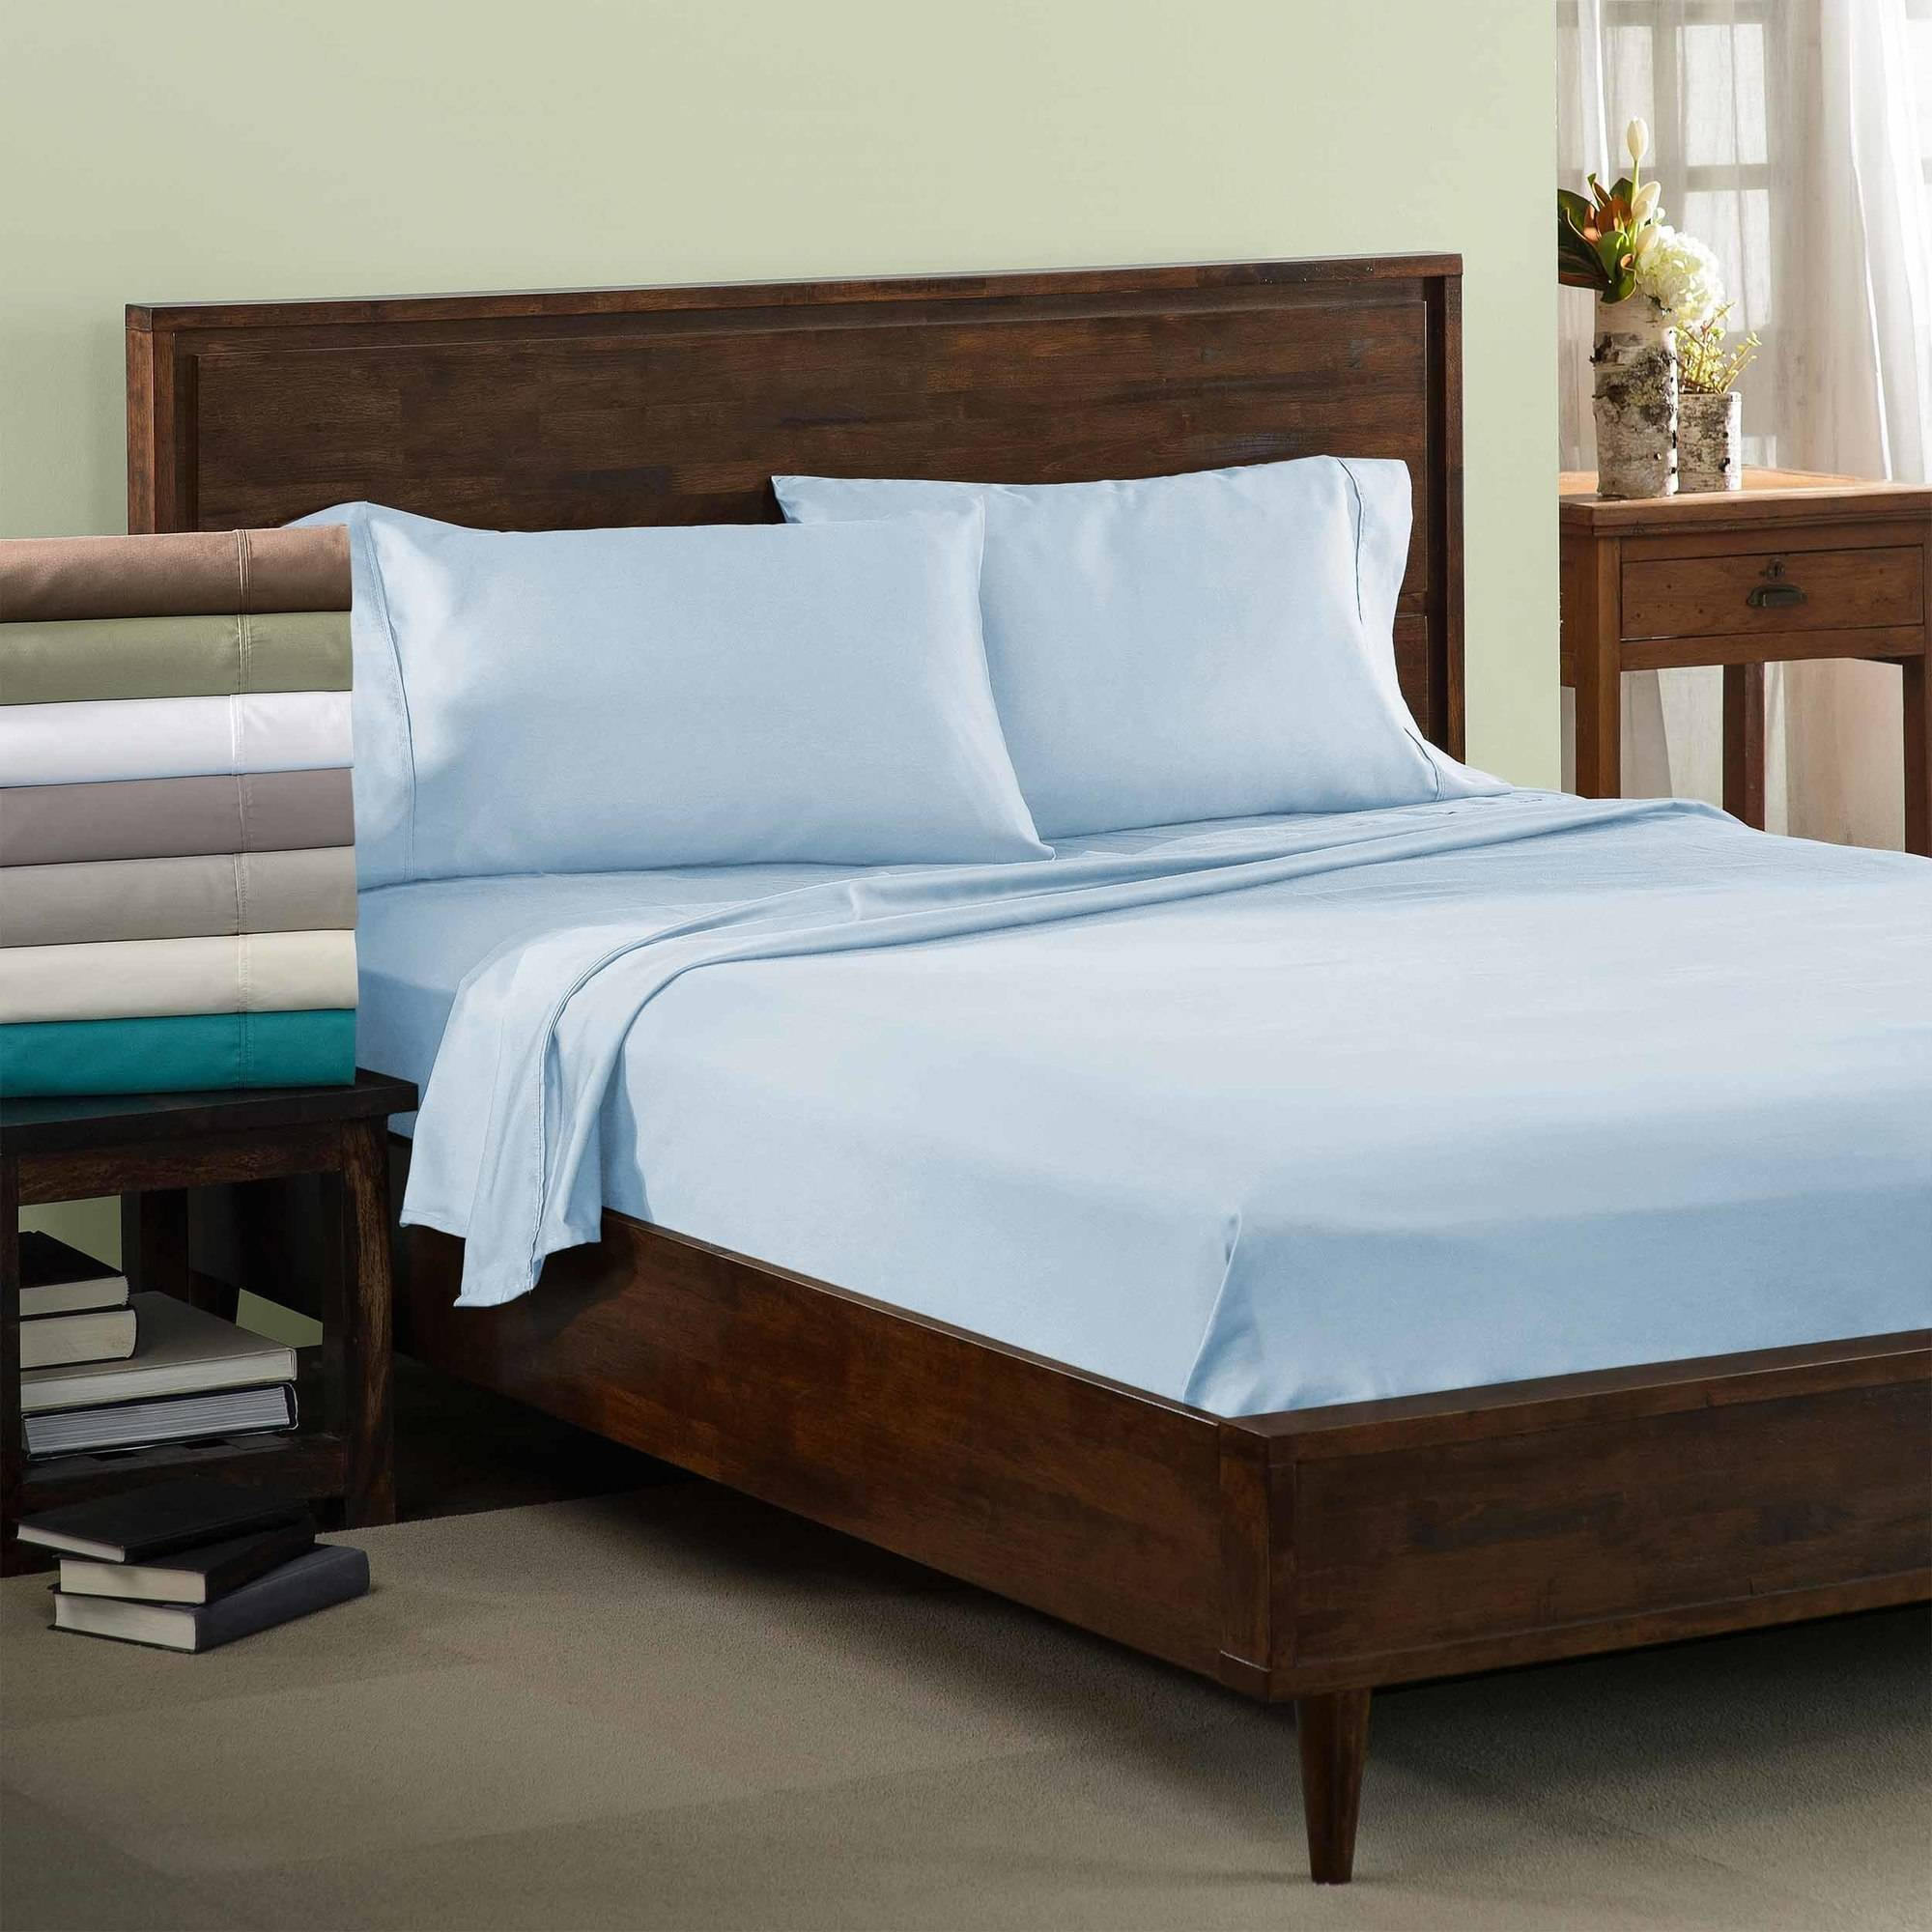 Superior 600 Thread Count Wrinkle Resistant Luxury Cotton Blend Solid Pillowcase Set